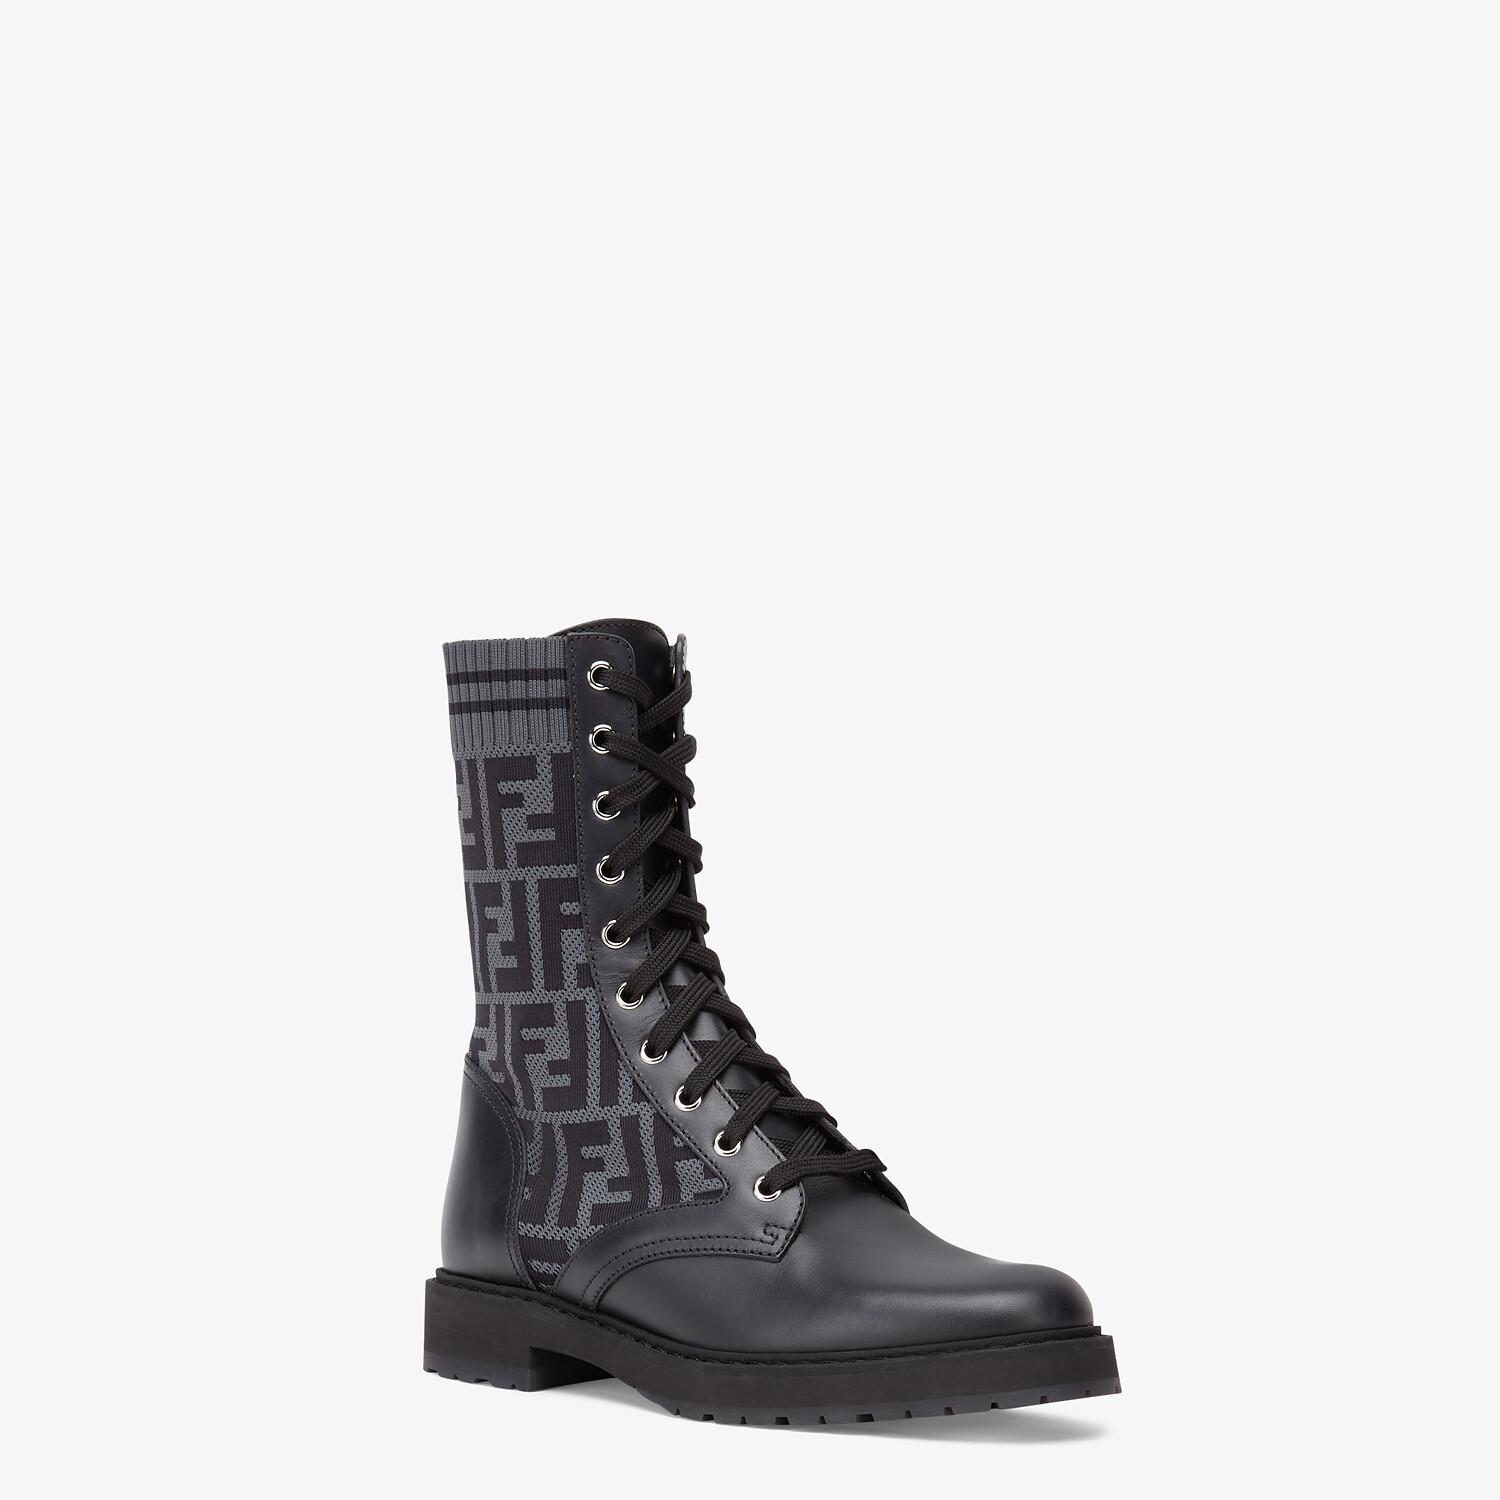 FENDI BIKER BOOTS - Black leather biker boots - view 2 detail